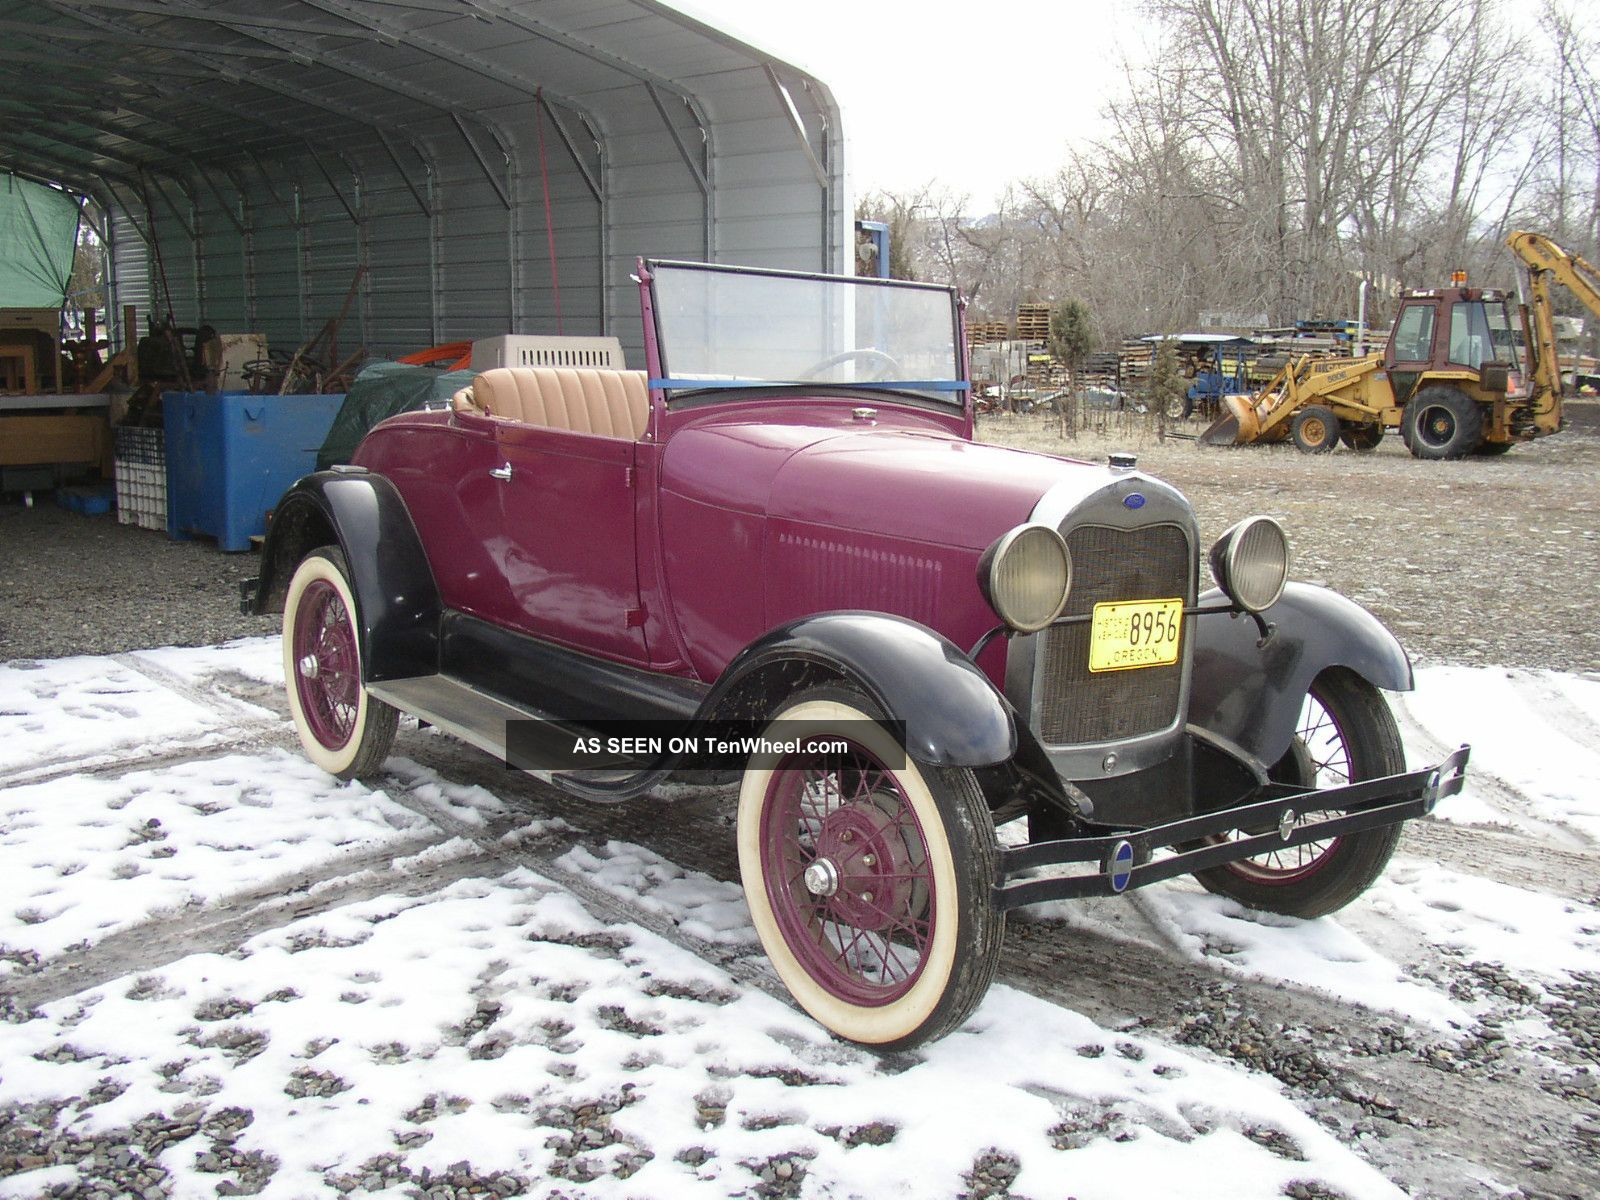 1929 29 Ford Model A Roadster Steel Body Hot Rat Street Rod 1932 32 Convertible Other photo